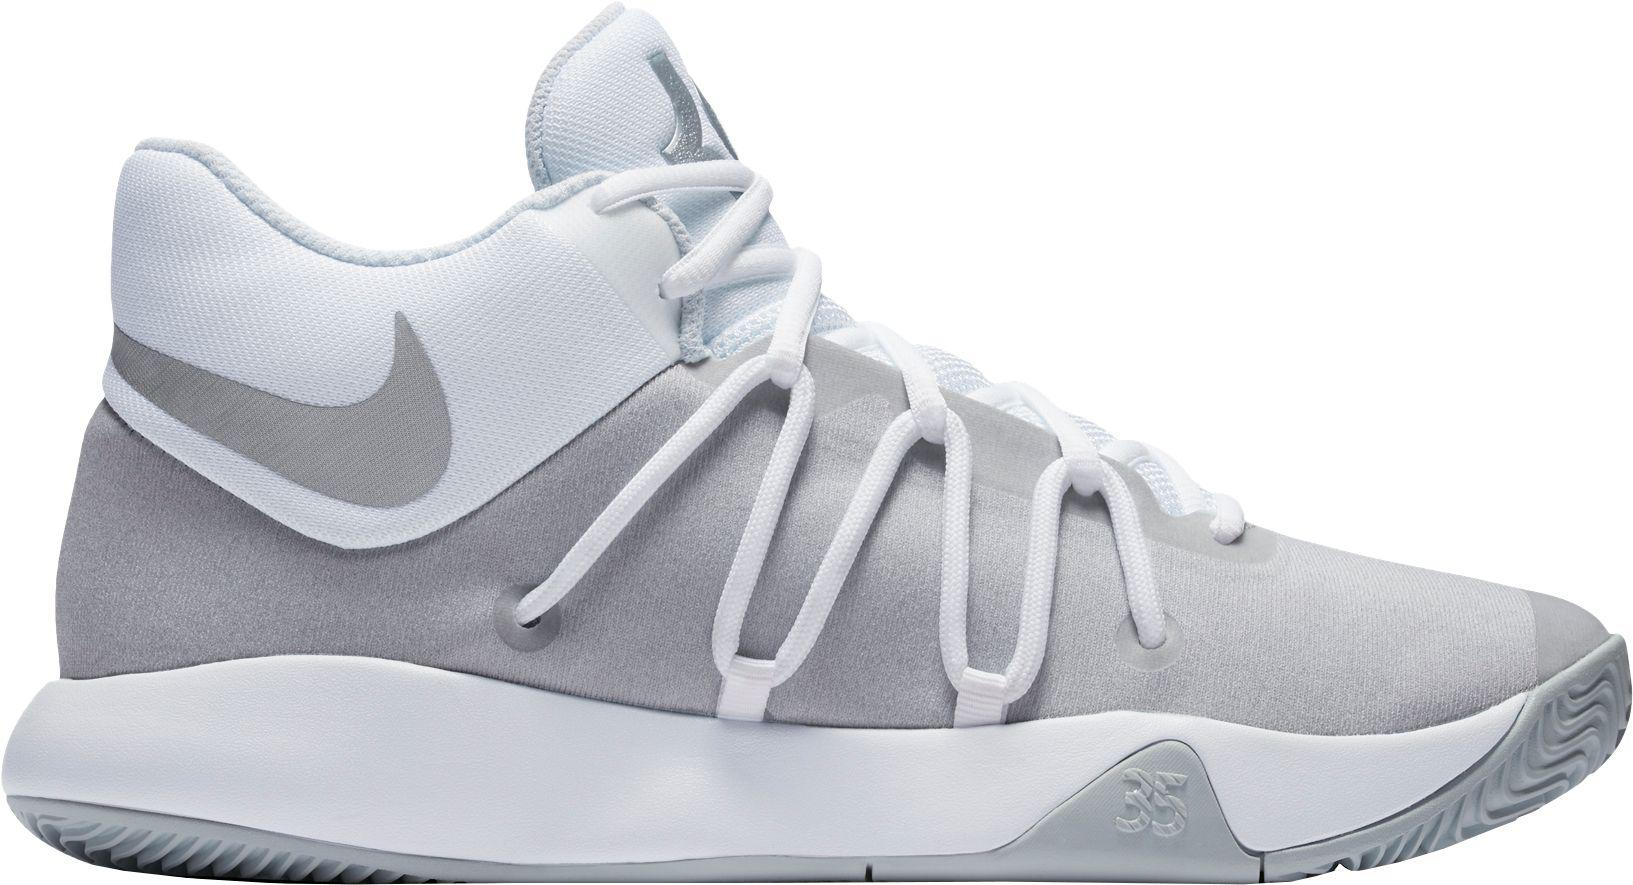 98fb8bd993bf Lyst - Nike Kd Trey 5 V Basketball Shoes in Gray for Men